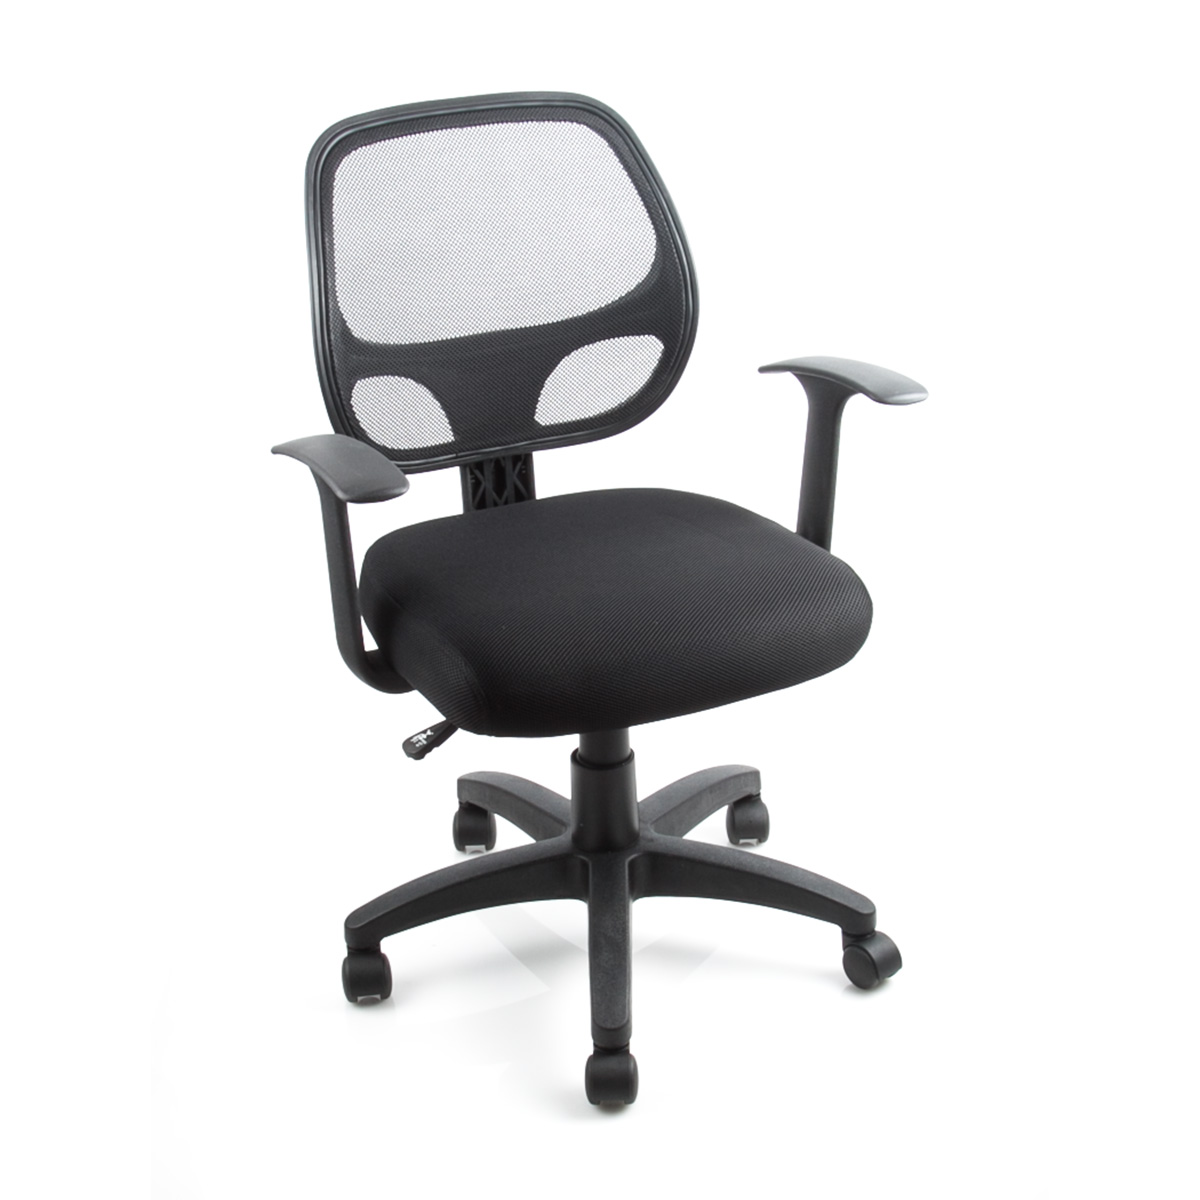 Mesh Ergonomic Office Chair 6 Black Modern Mesh Ergonomic Office Task Chair Stylish